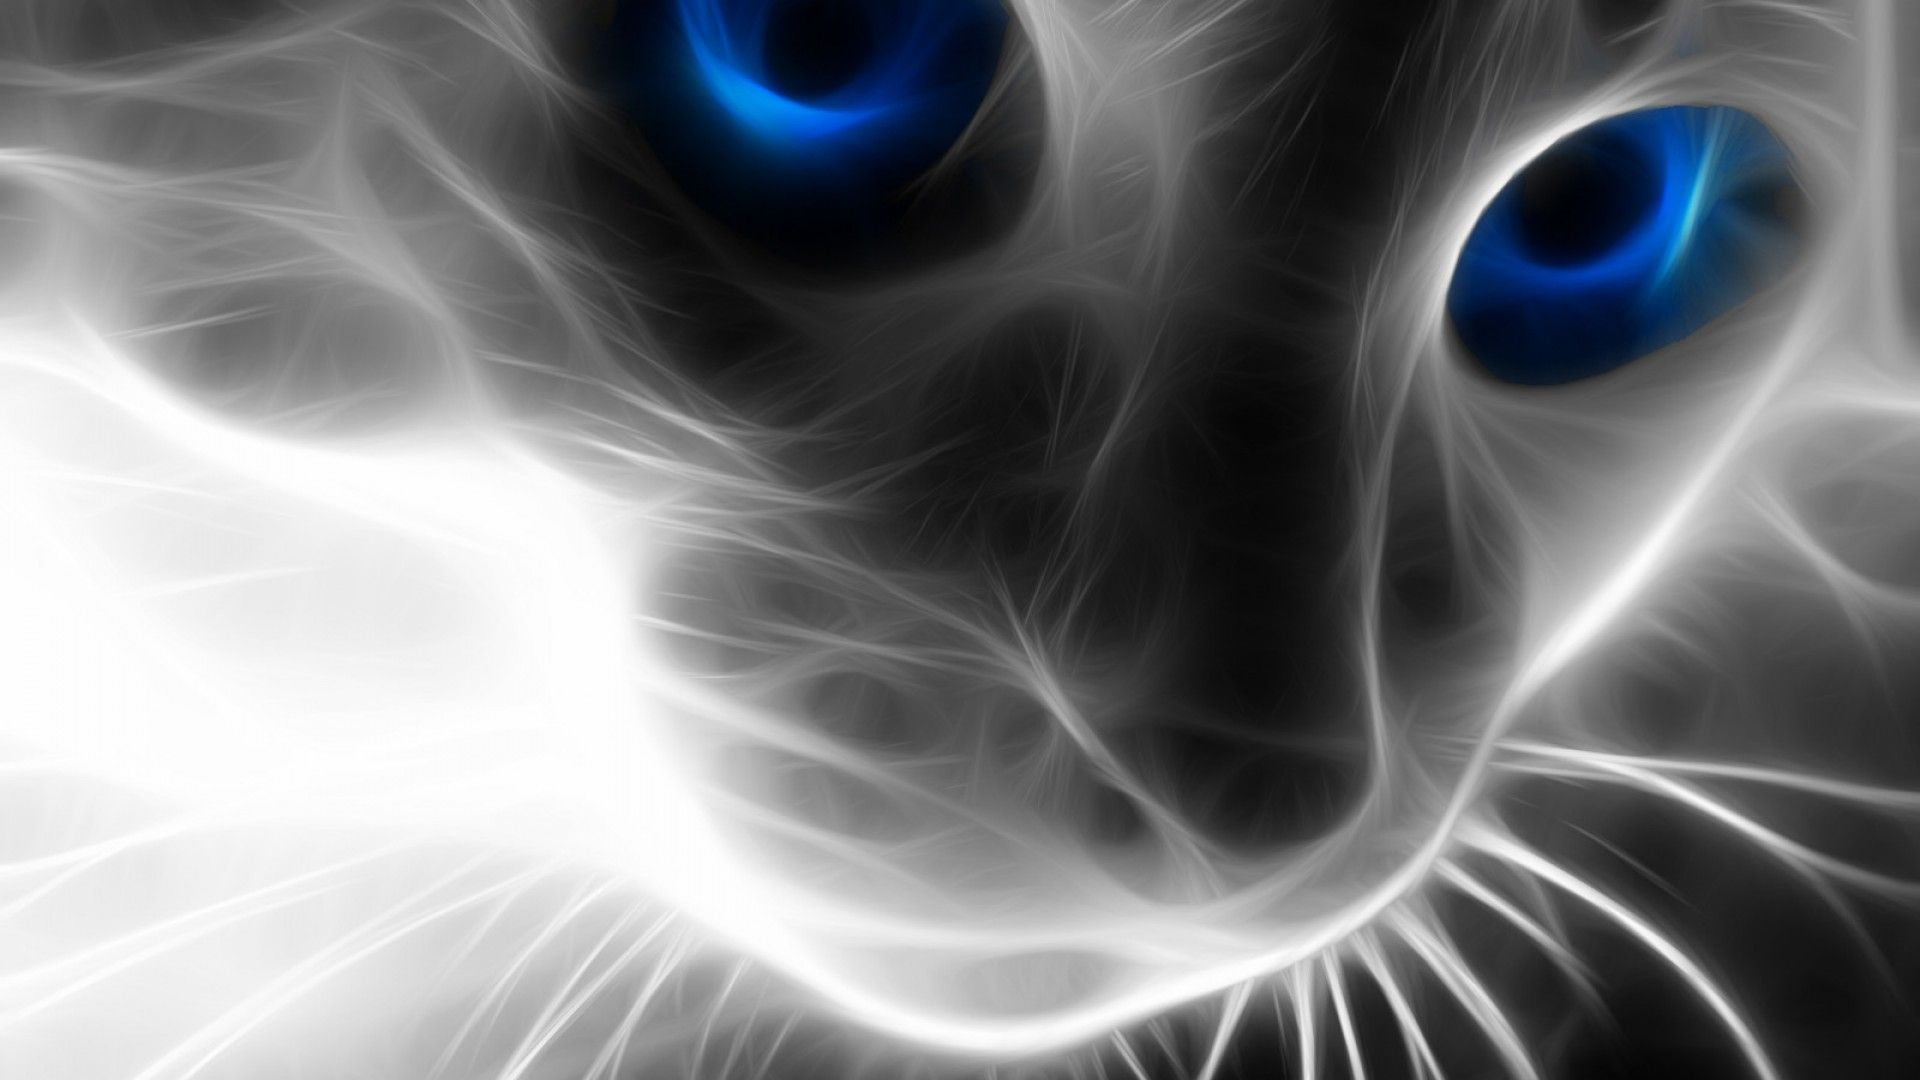 Animal Eyes Abstract Wallpapers Top Free Animal Eyes Abstract Backgrounds Wallpaperaccess